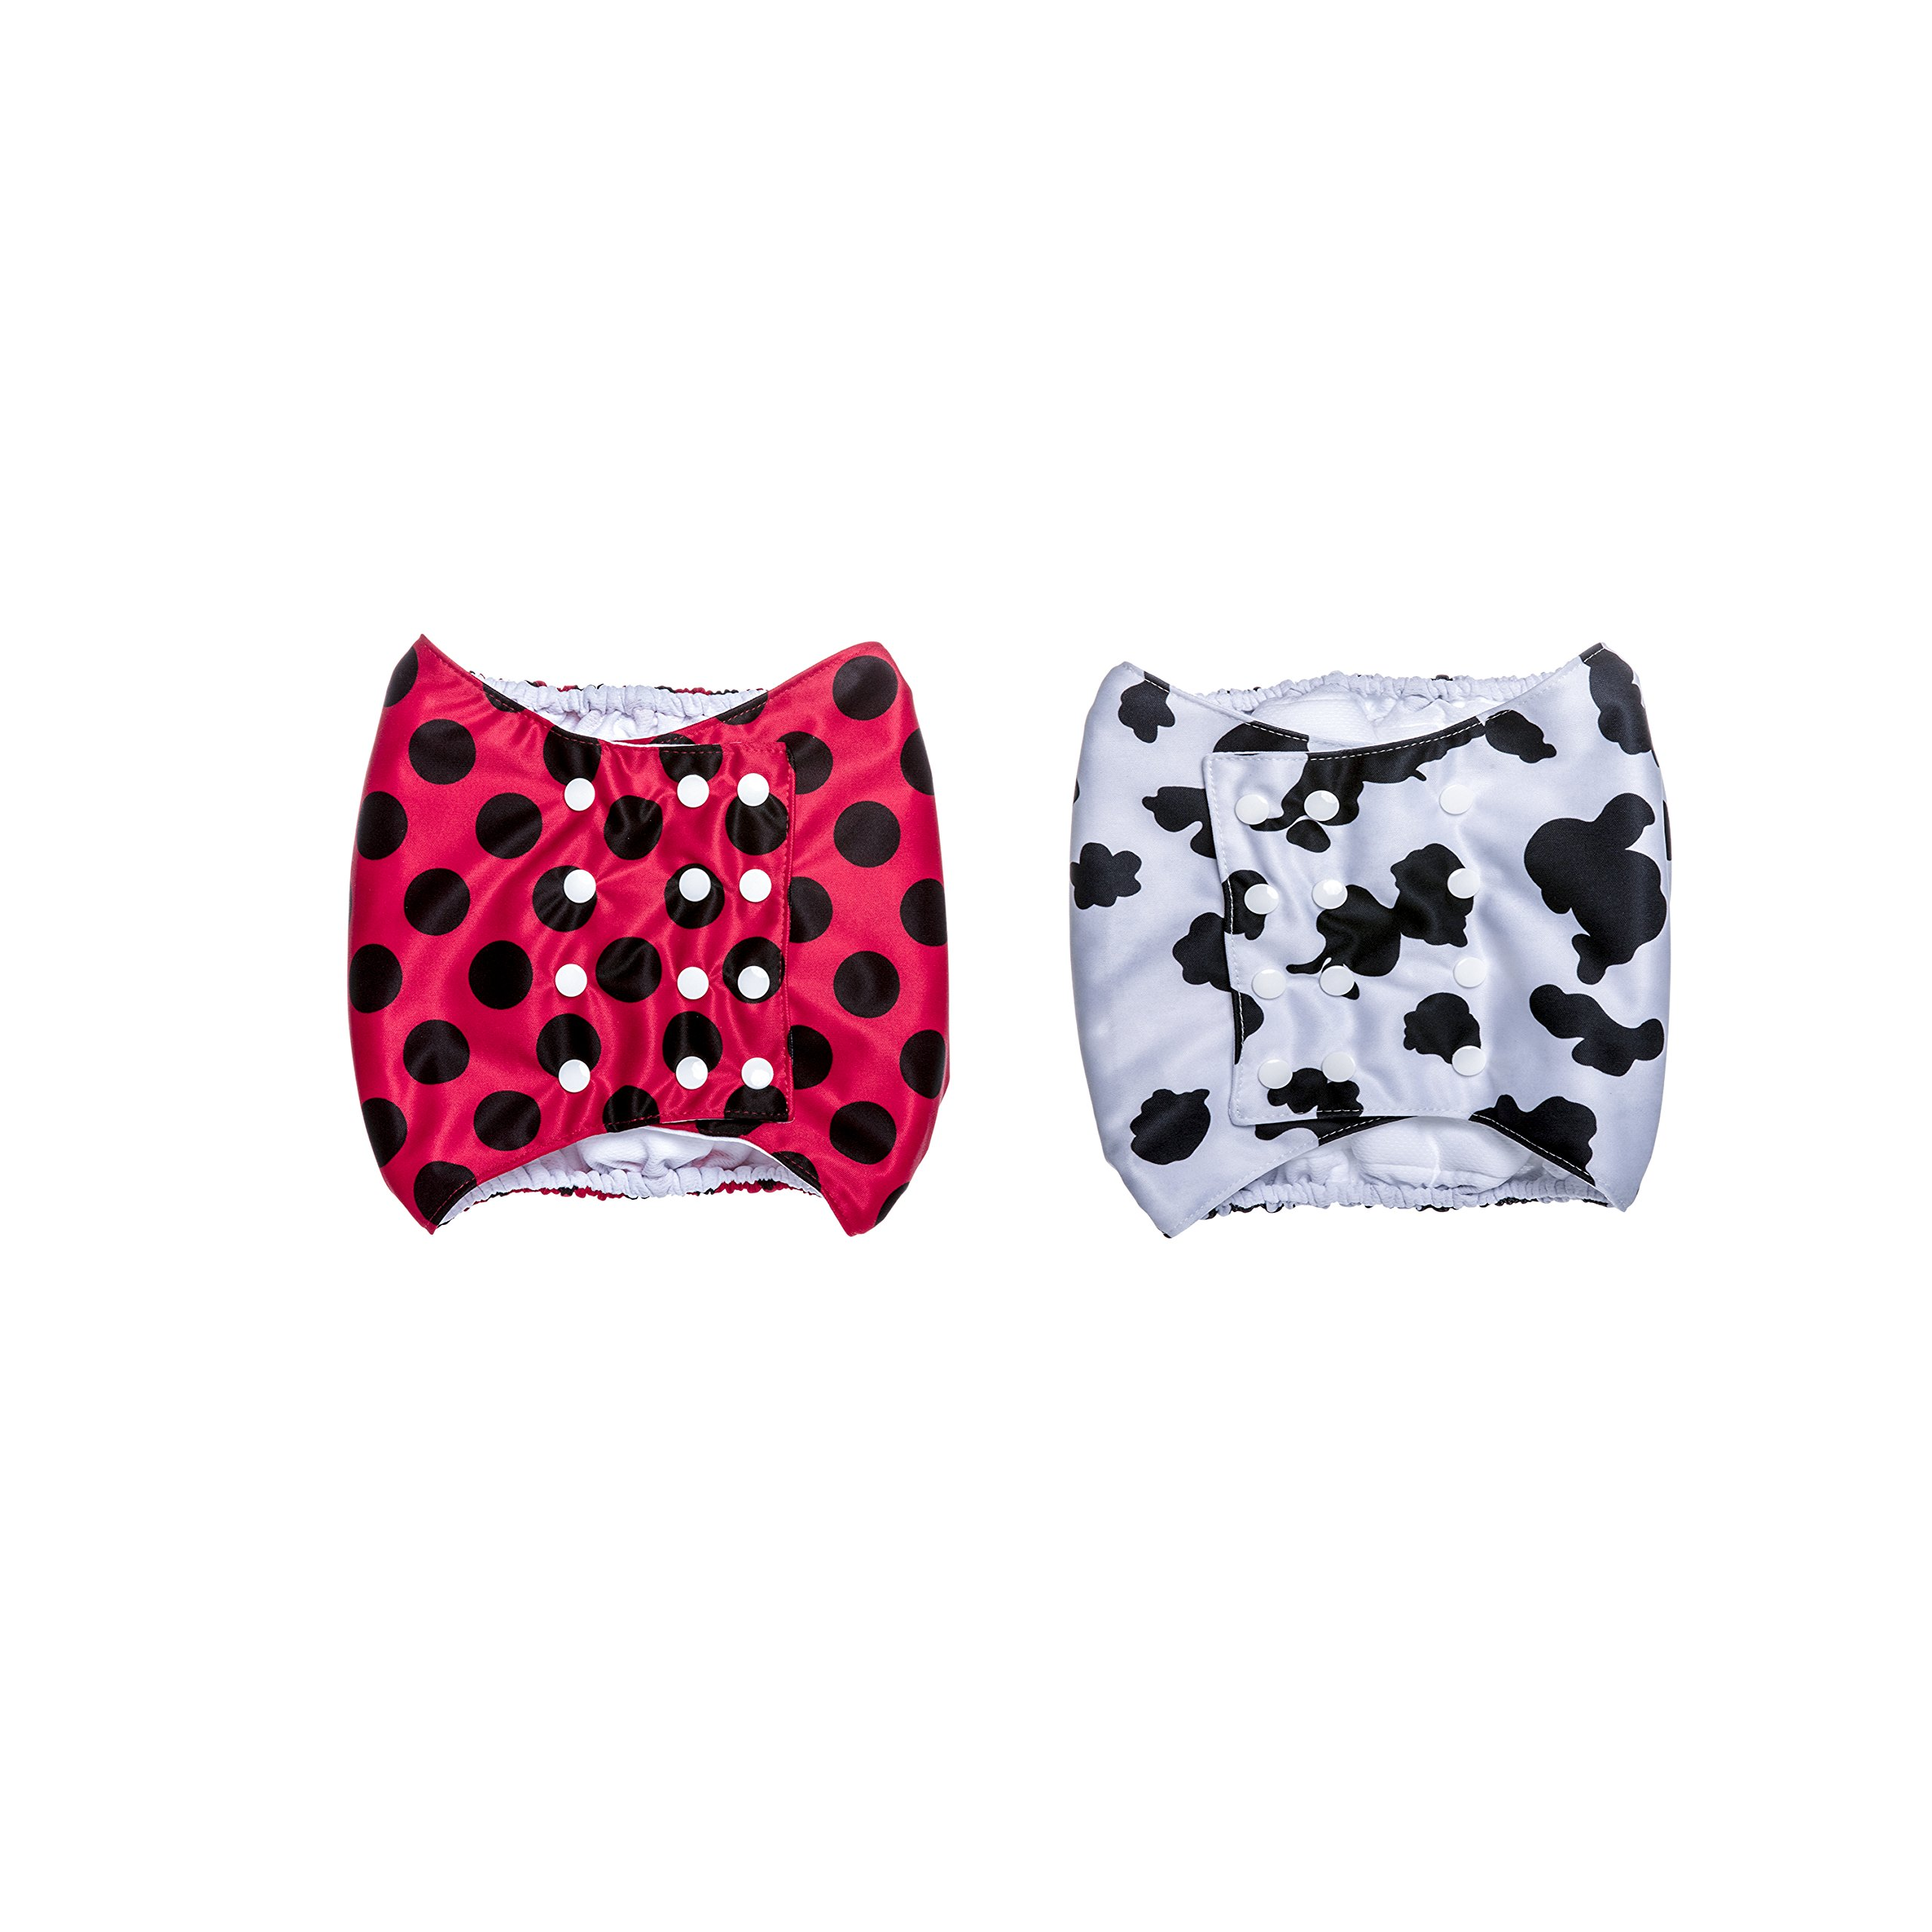 Brooke's Best Belly Bands for Male Dogs 2 pack (L, Red with Black Dots/ Cow print)